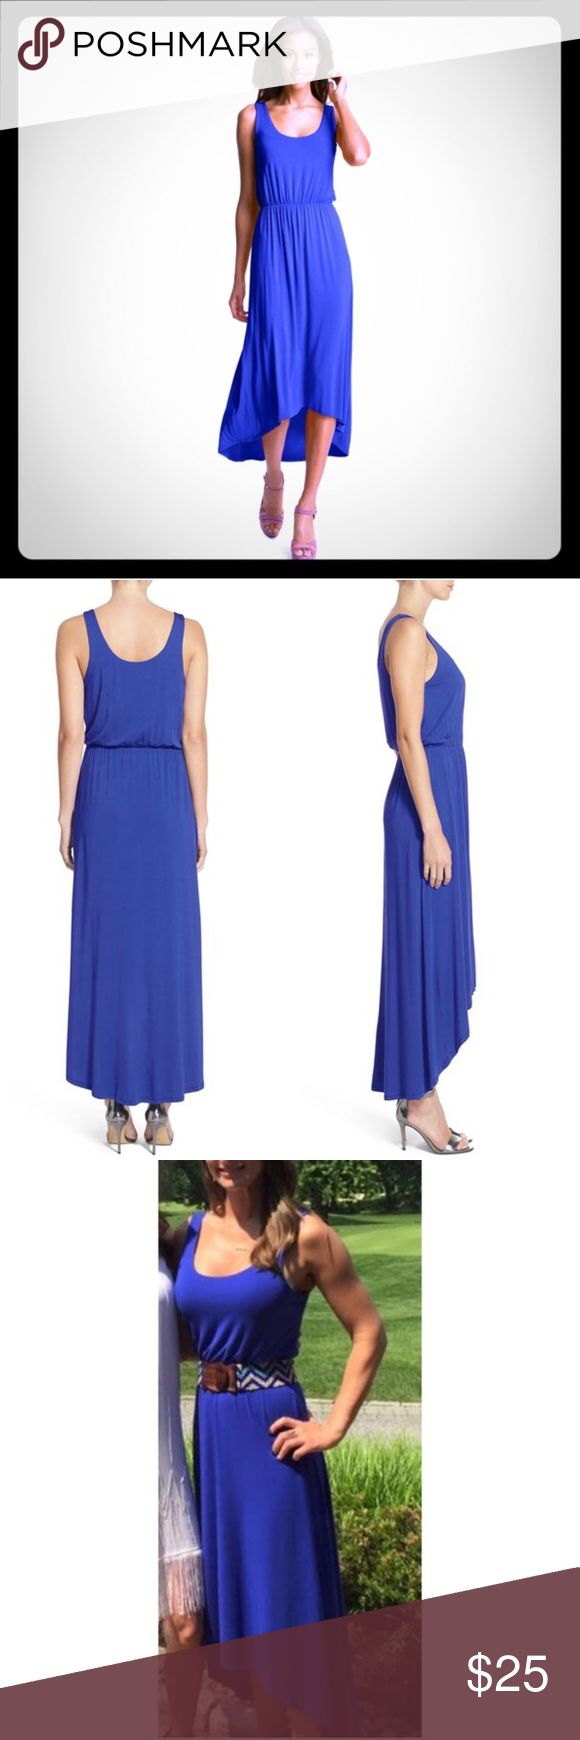 Nordstrom - Felicity & Coco High/Low Dress A comfortable elasticized waistband and on-trend high/low hemline define the casual-chic silhouette of a soft jersey tank dress. Slips on over head. Elasticized waist. Lightweight, stretchy jersey. Partially lined. 95% viscose rayon, 5% spandex. Color: Cobalt Blue  Paid $68 for this dress and only wore it twice! Nordstrom Dresses Maxi